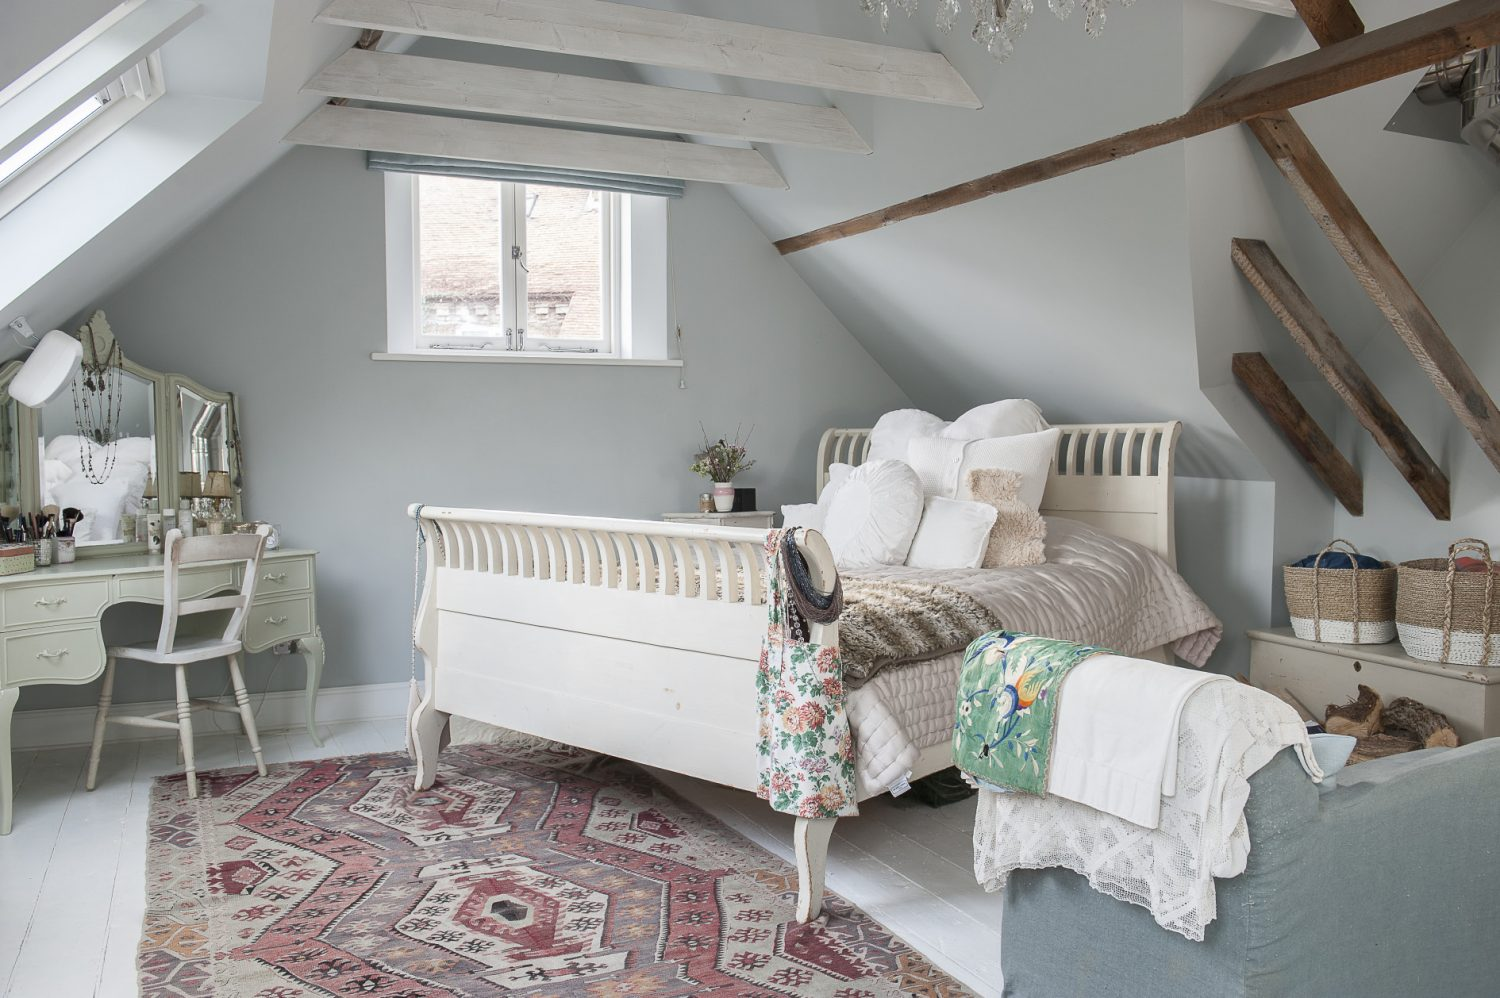 Emma's own bedroom one might expect to be something special and, of course, it is. It started life as the hayloft above what is now the drawing room